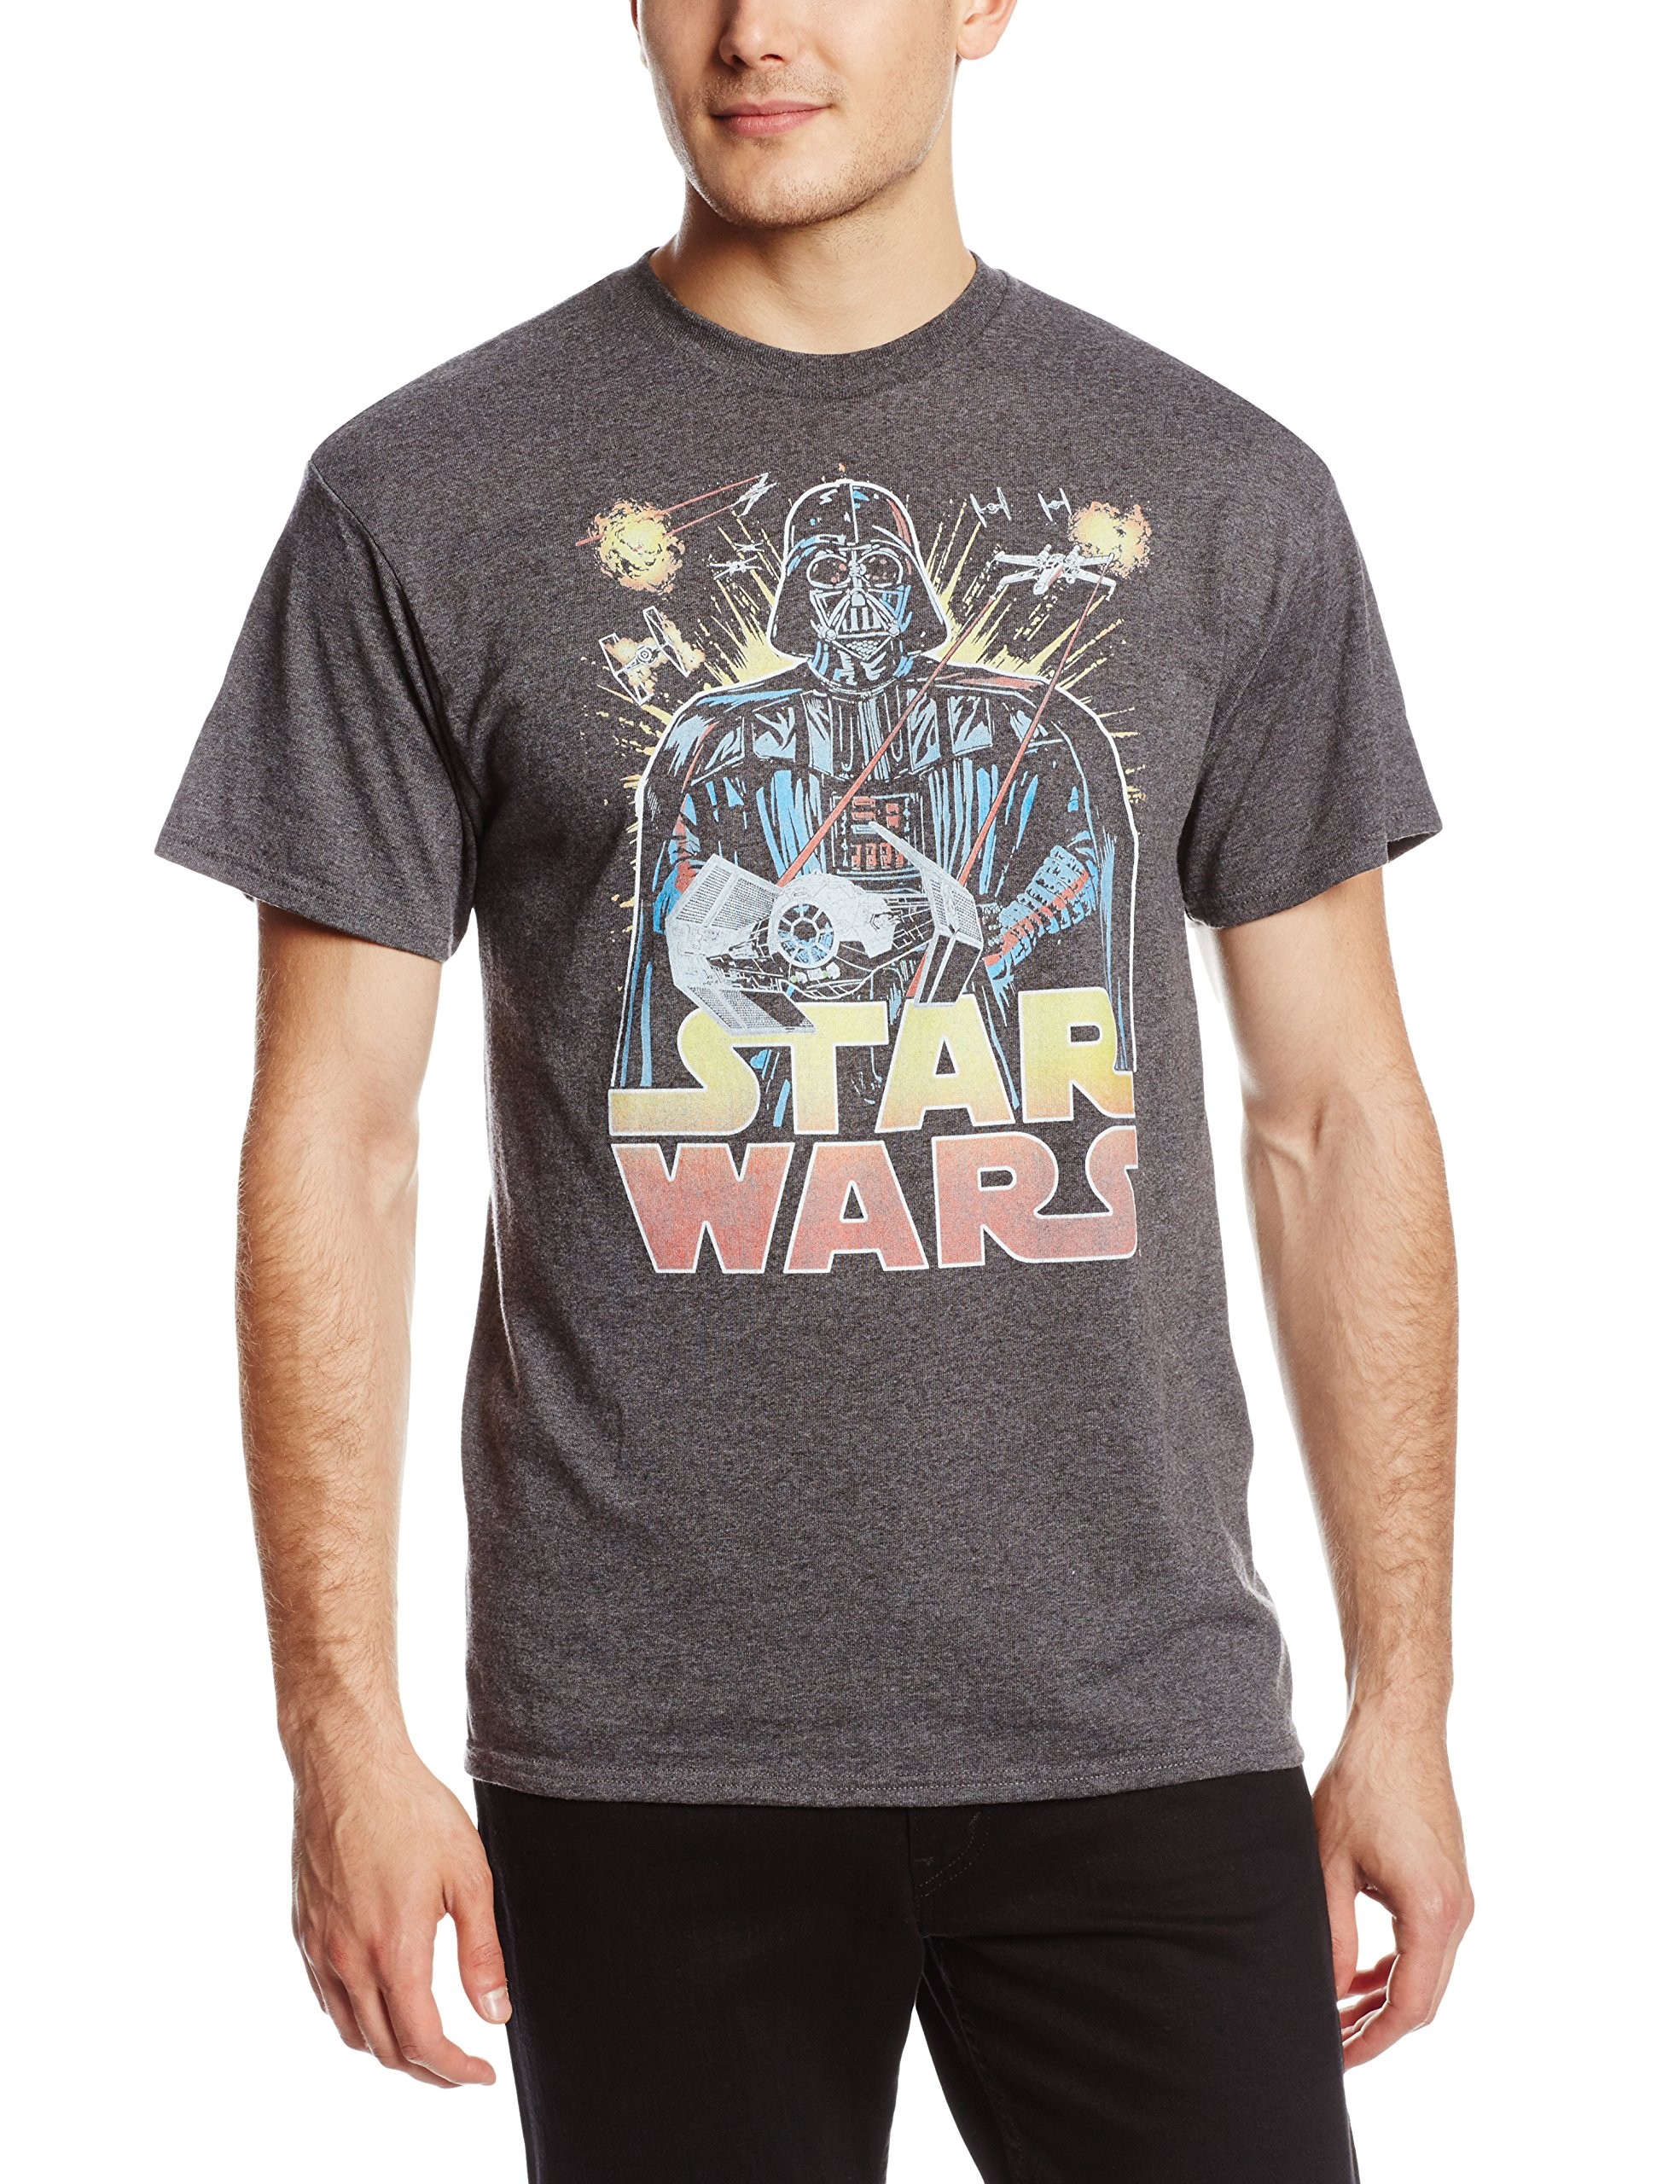 Star wars men 39 s ancient threat t shirt for Vintage star wars t shirts men